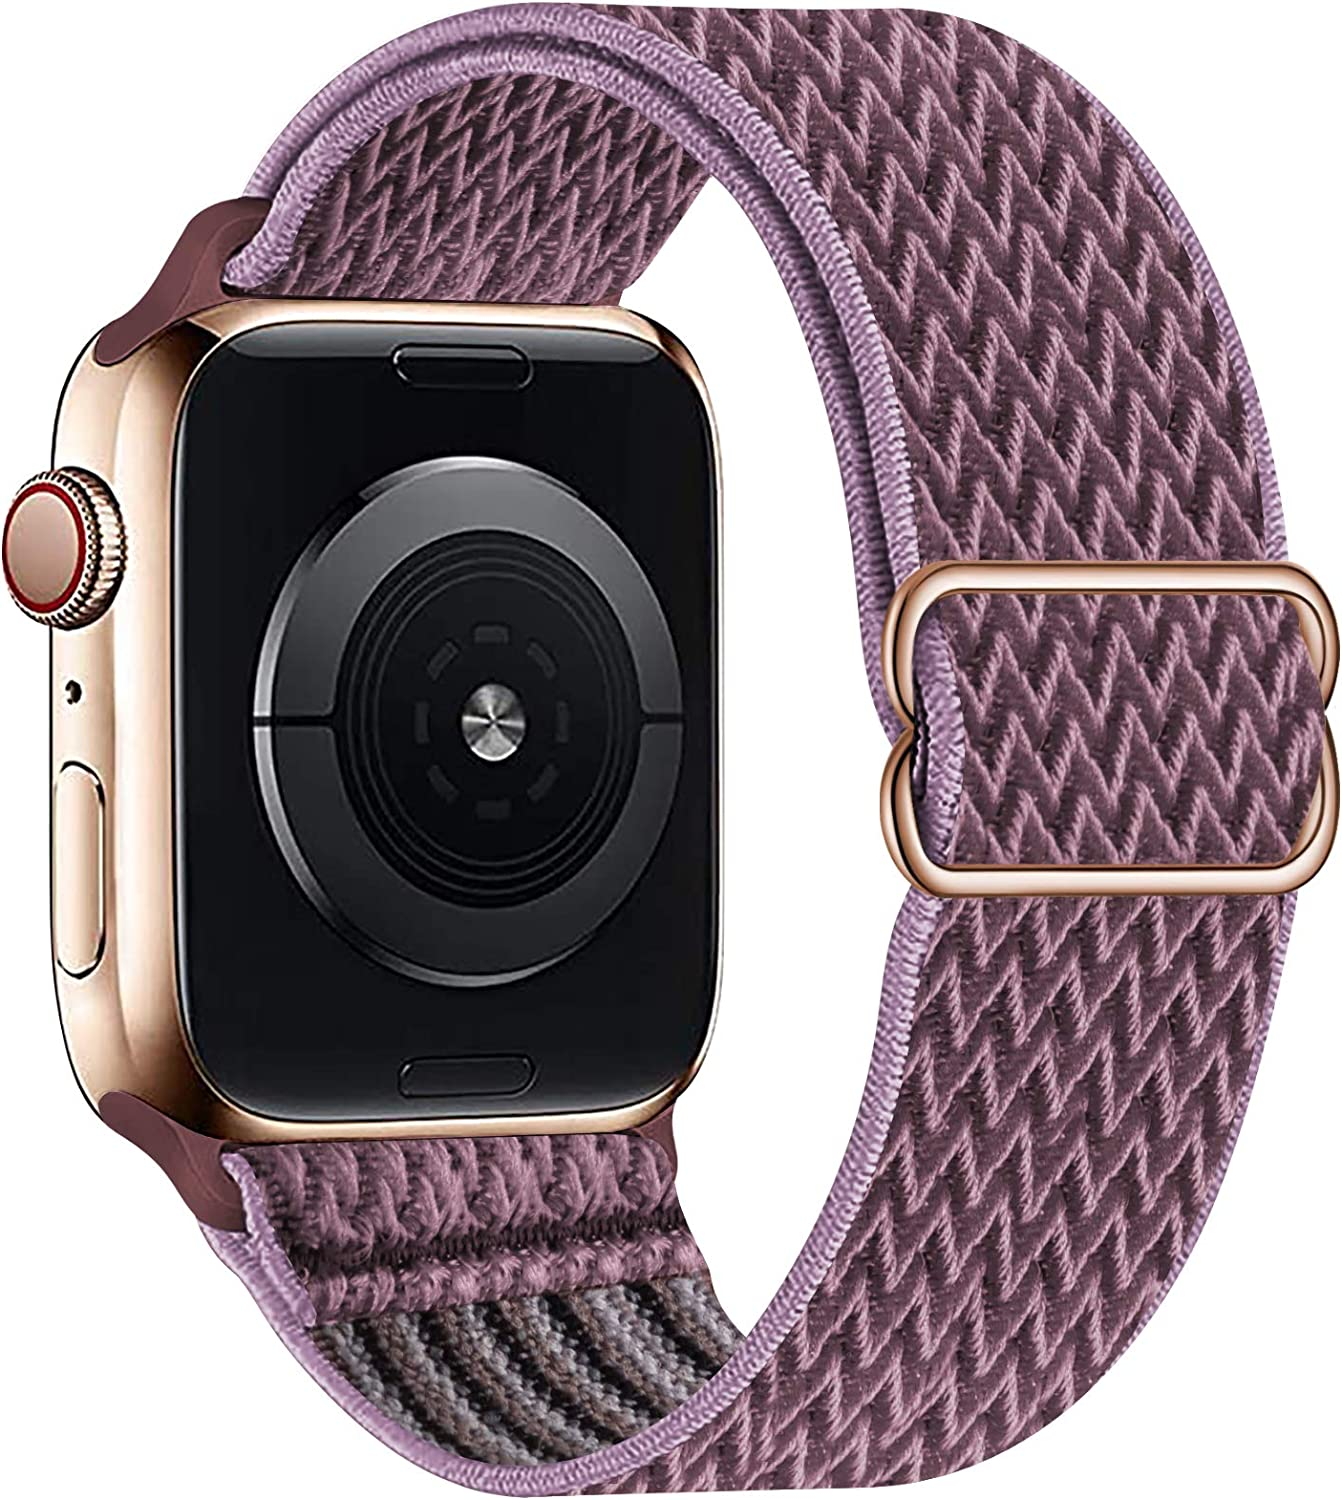 OHCBOOGIE Stretchy Solo Loop Strap Compatible with Apple Watch Bands 38mm 40mm 42mm 44mm ,Adjustable Stretch Braided Sport Elastics Weave Nylon Women Men Wristband Compatible with iWatch Series 6/5/4/3/2/1 SE,Smokey Mauve,38/40mm